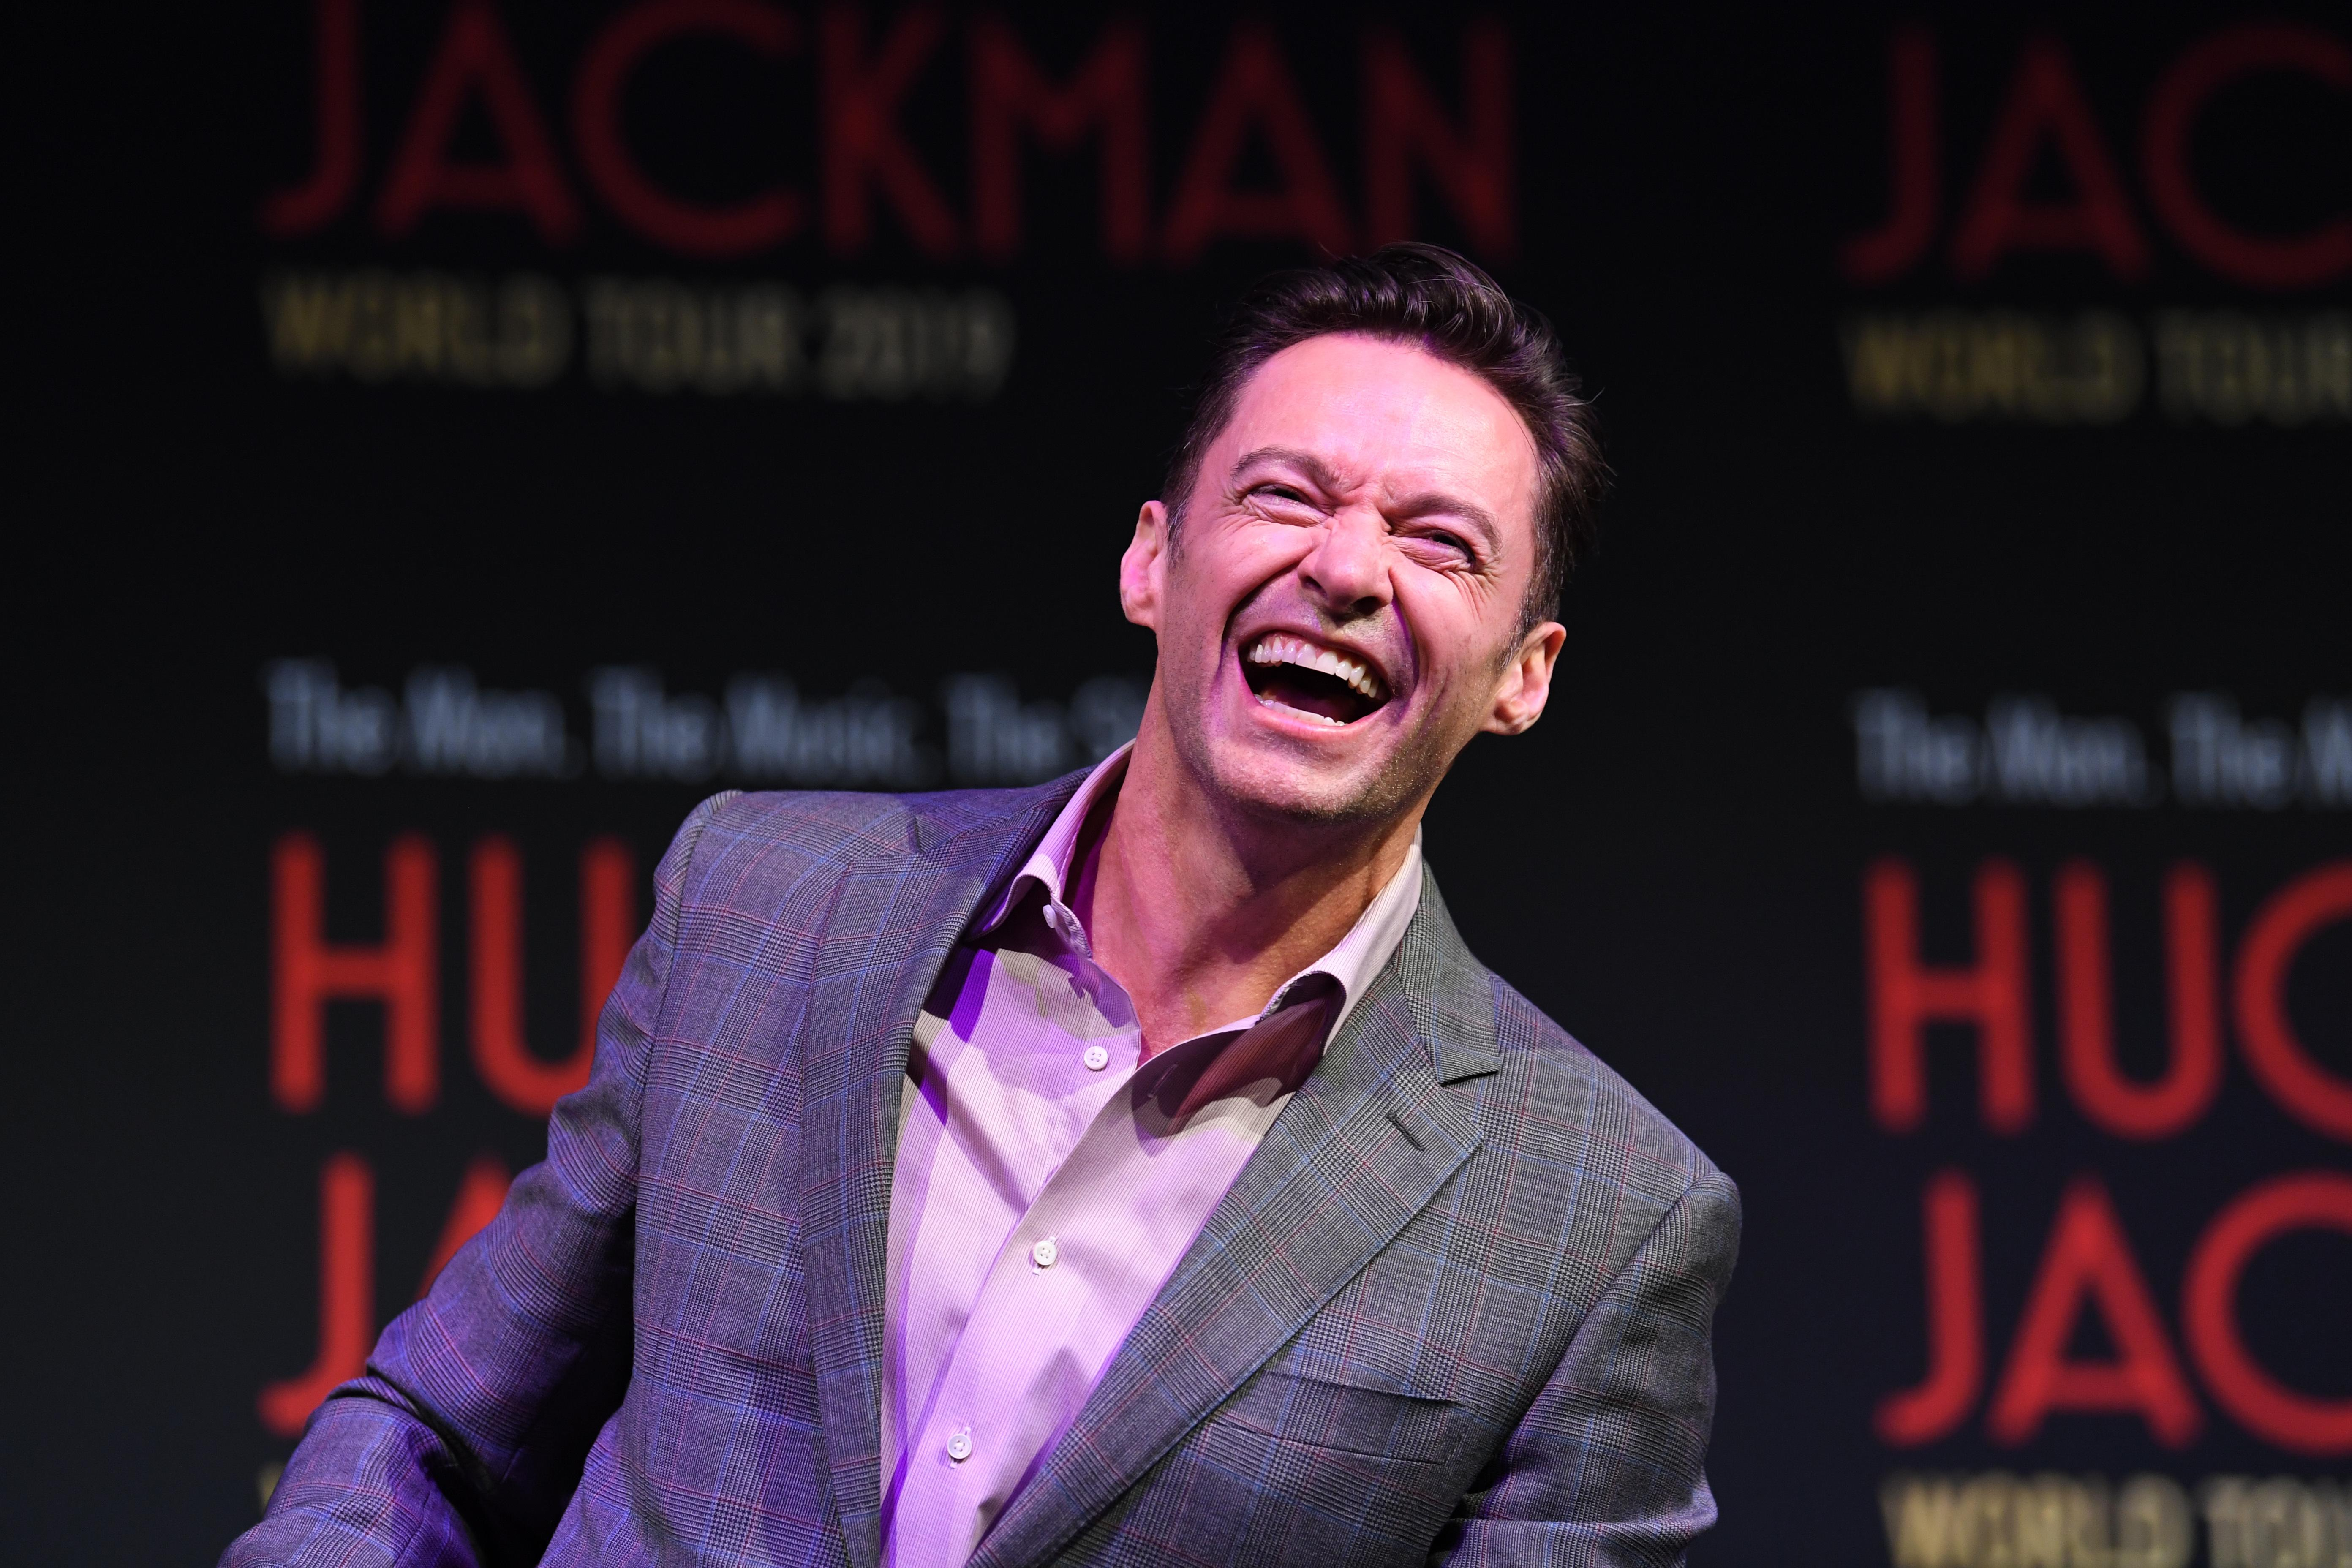 Hugh Jackman spends Valentine's Day doing a jigsaw of him and his wife